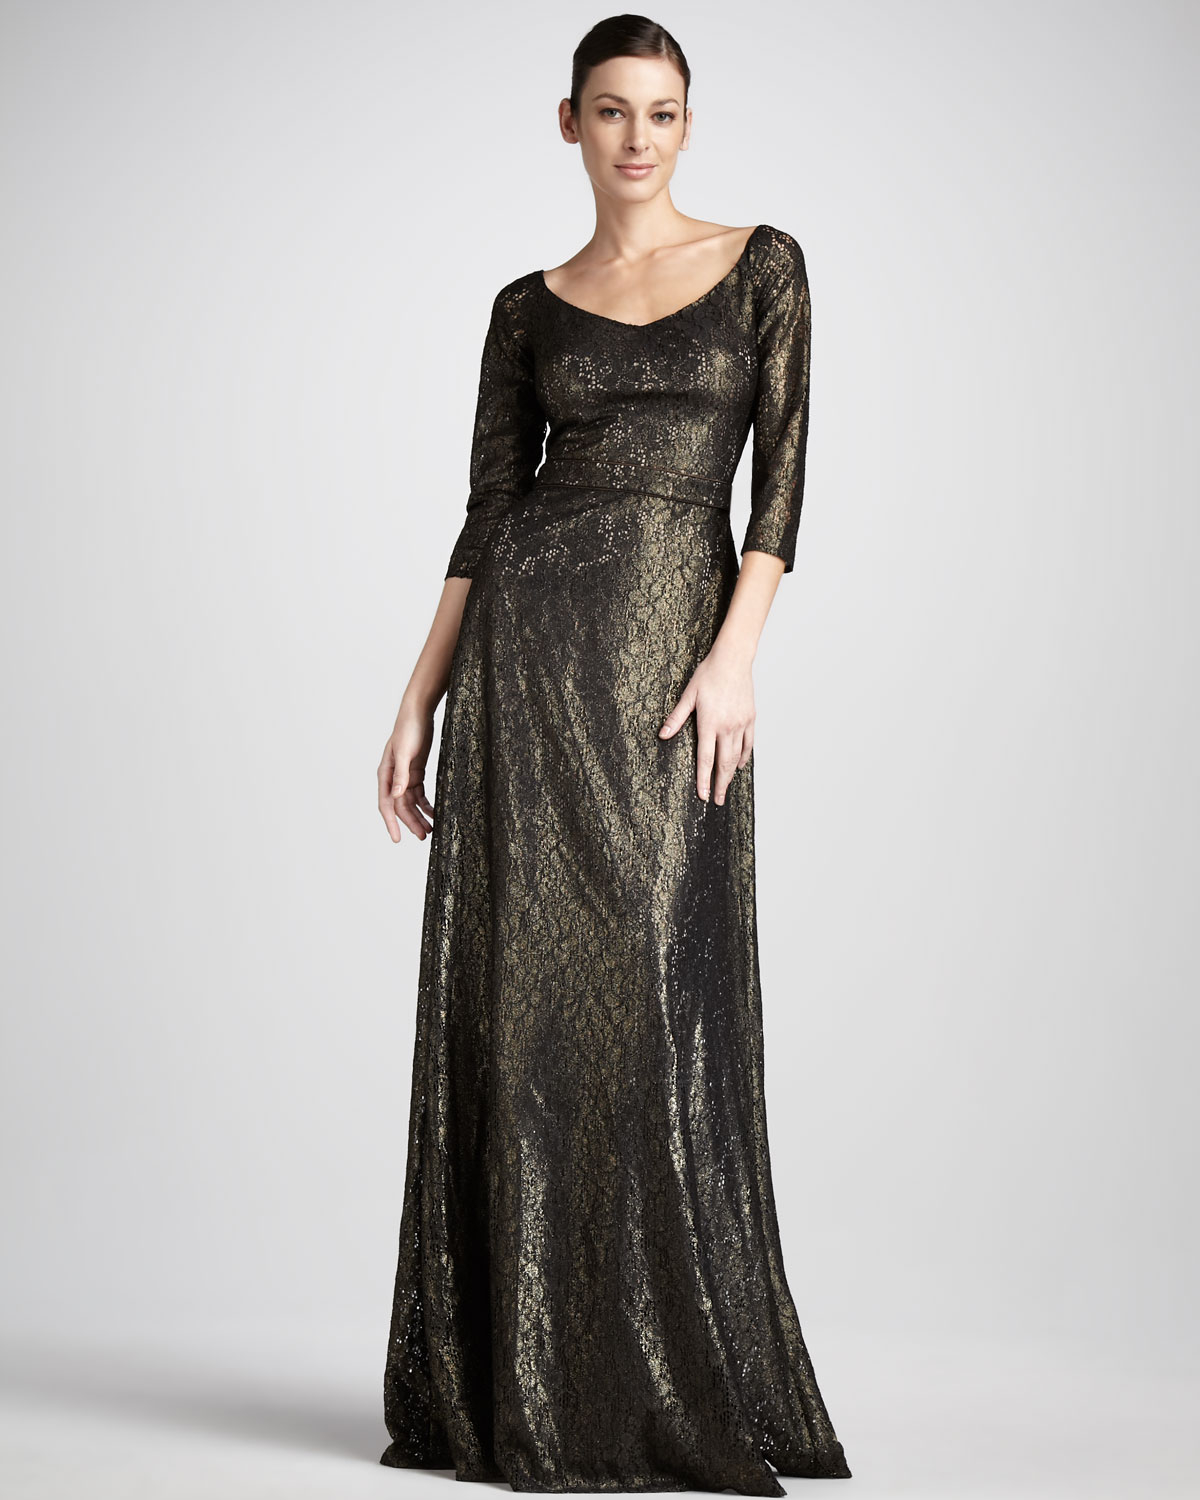 David Meister Metallic Lace Gown in Black - Lyst